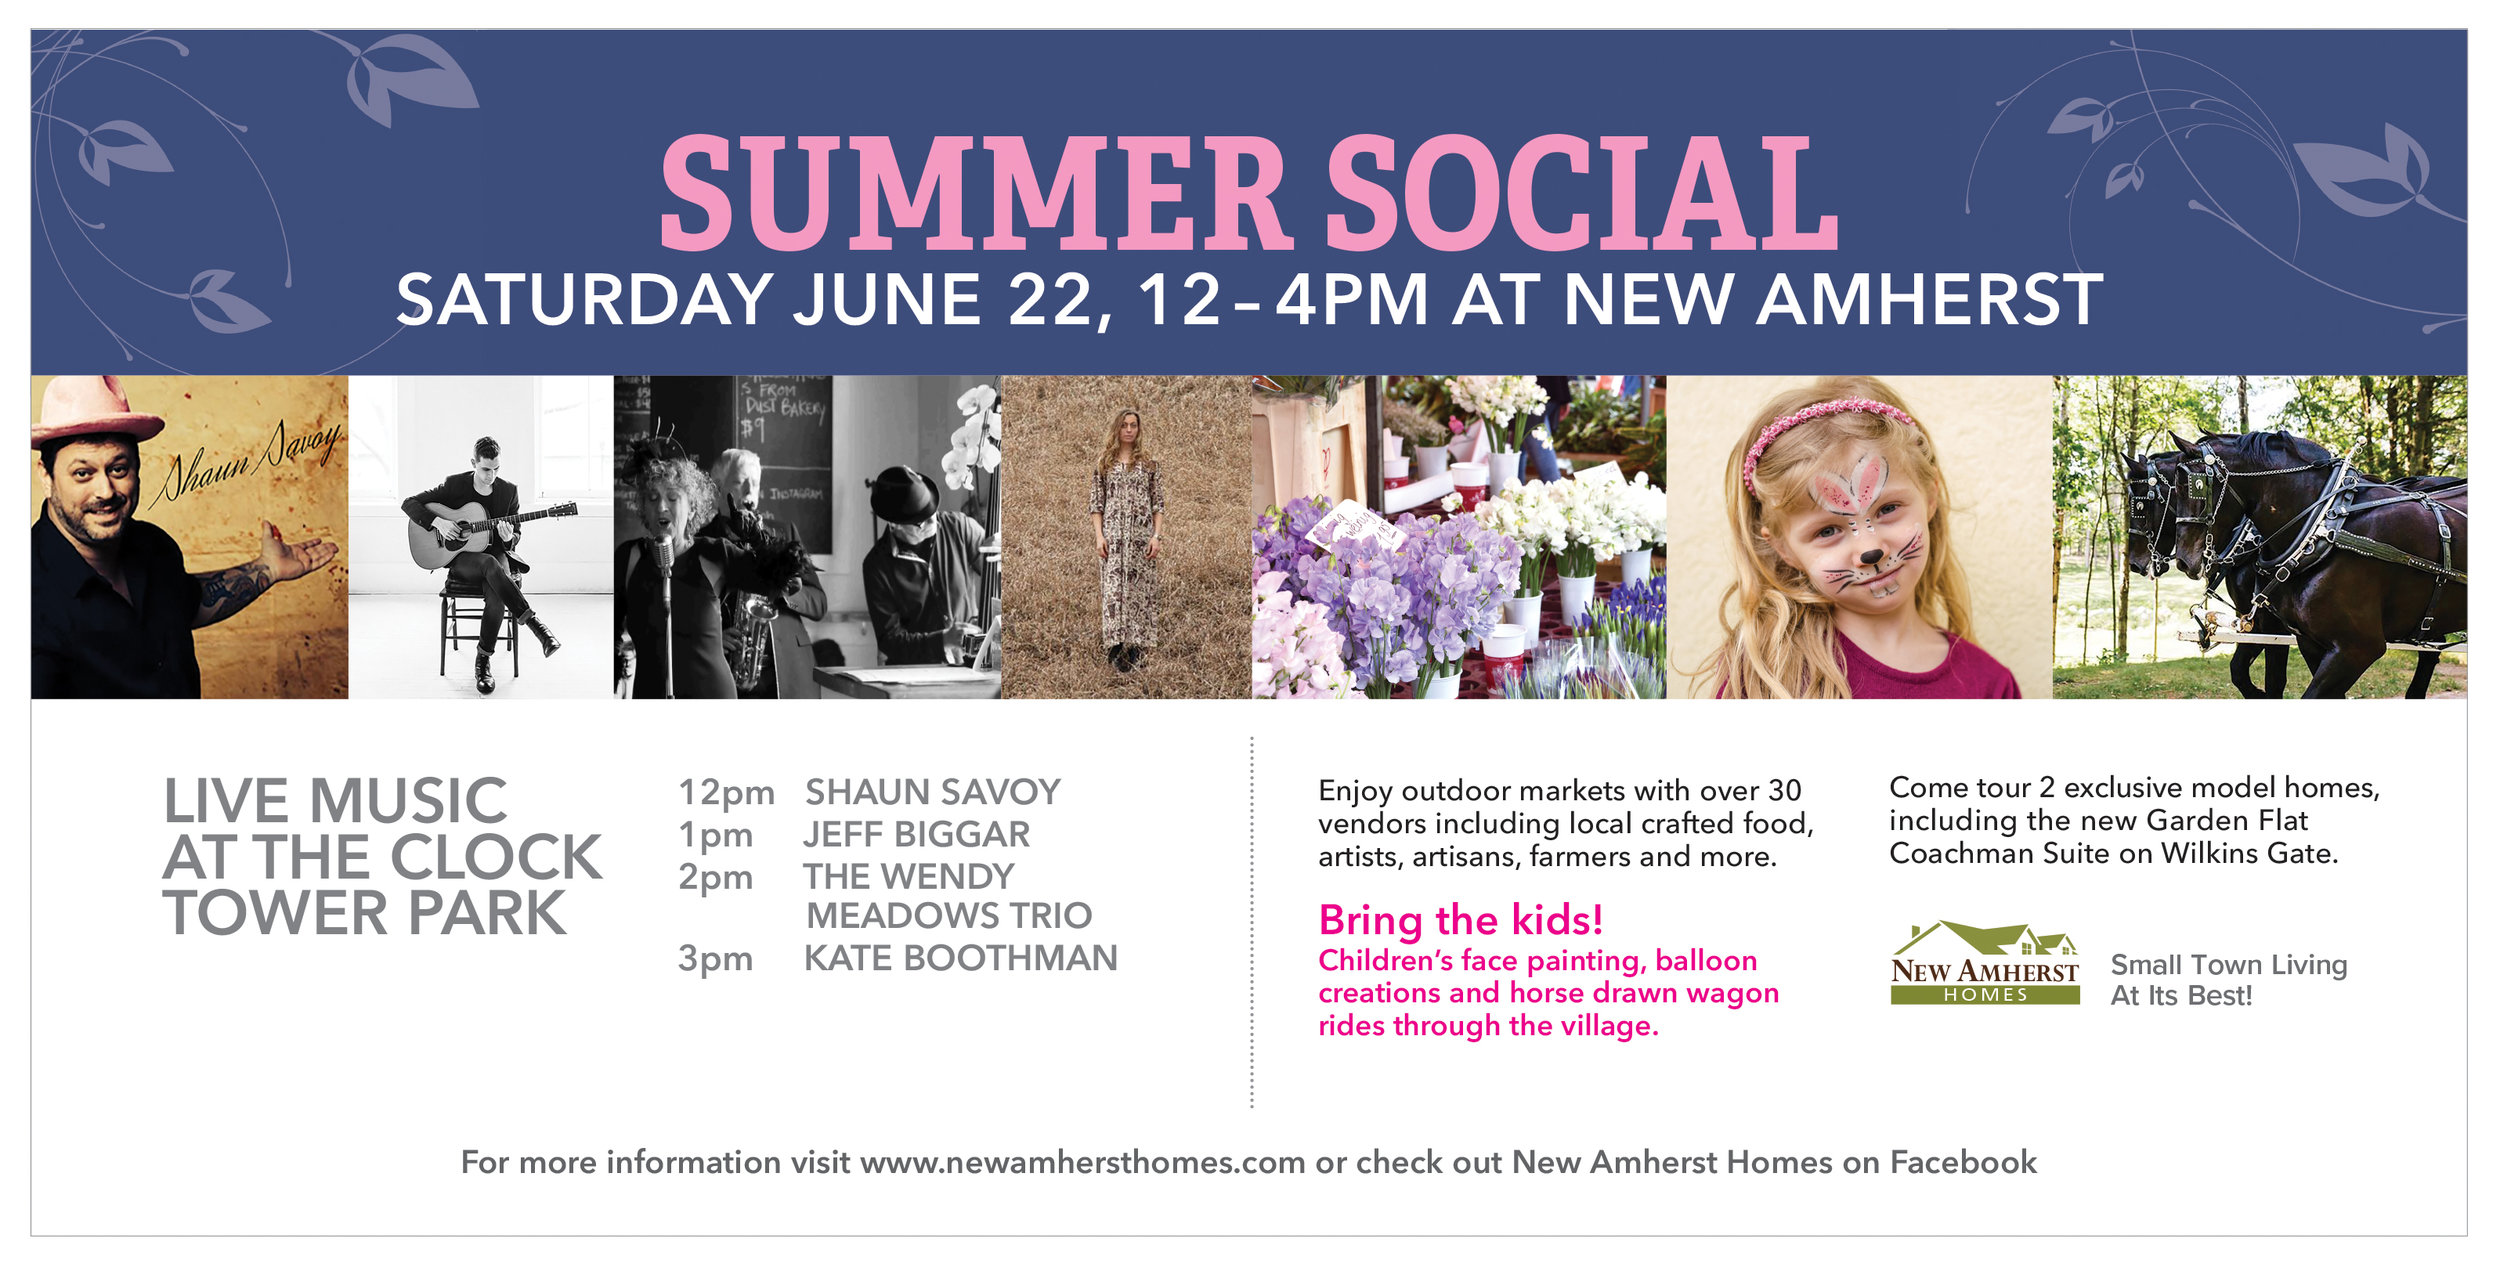 revised newamherst summer social 10.375 x 5.143 final _9x.jpg